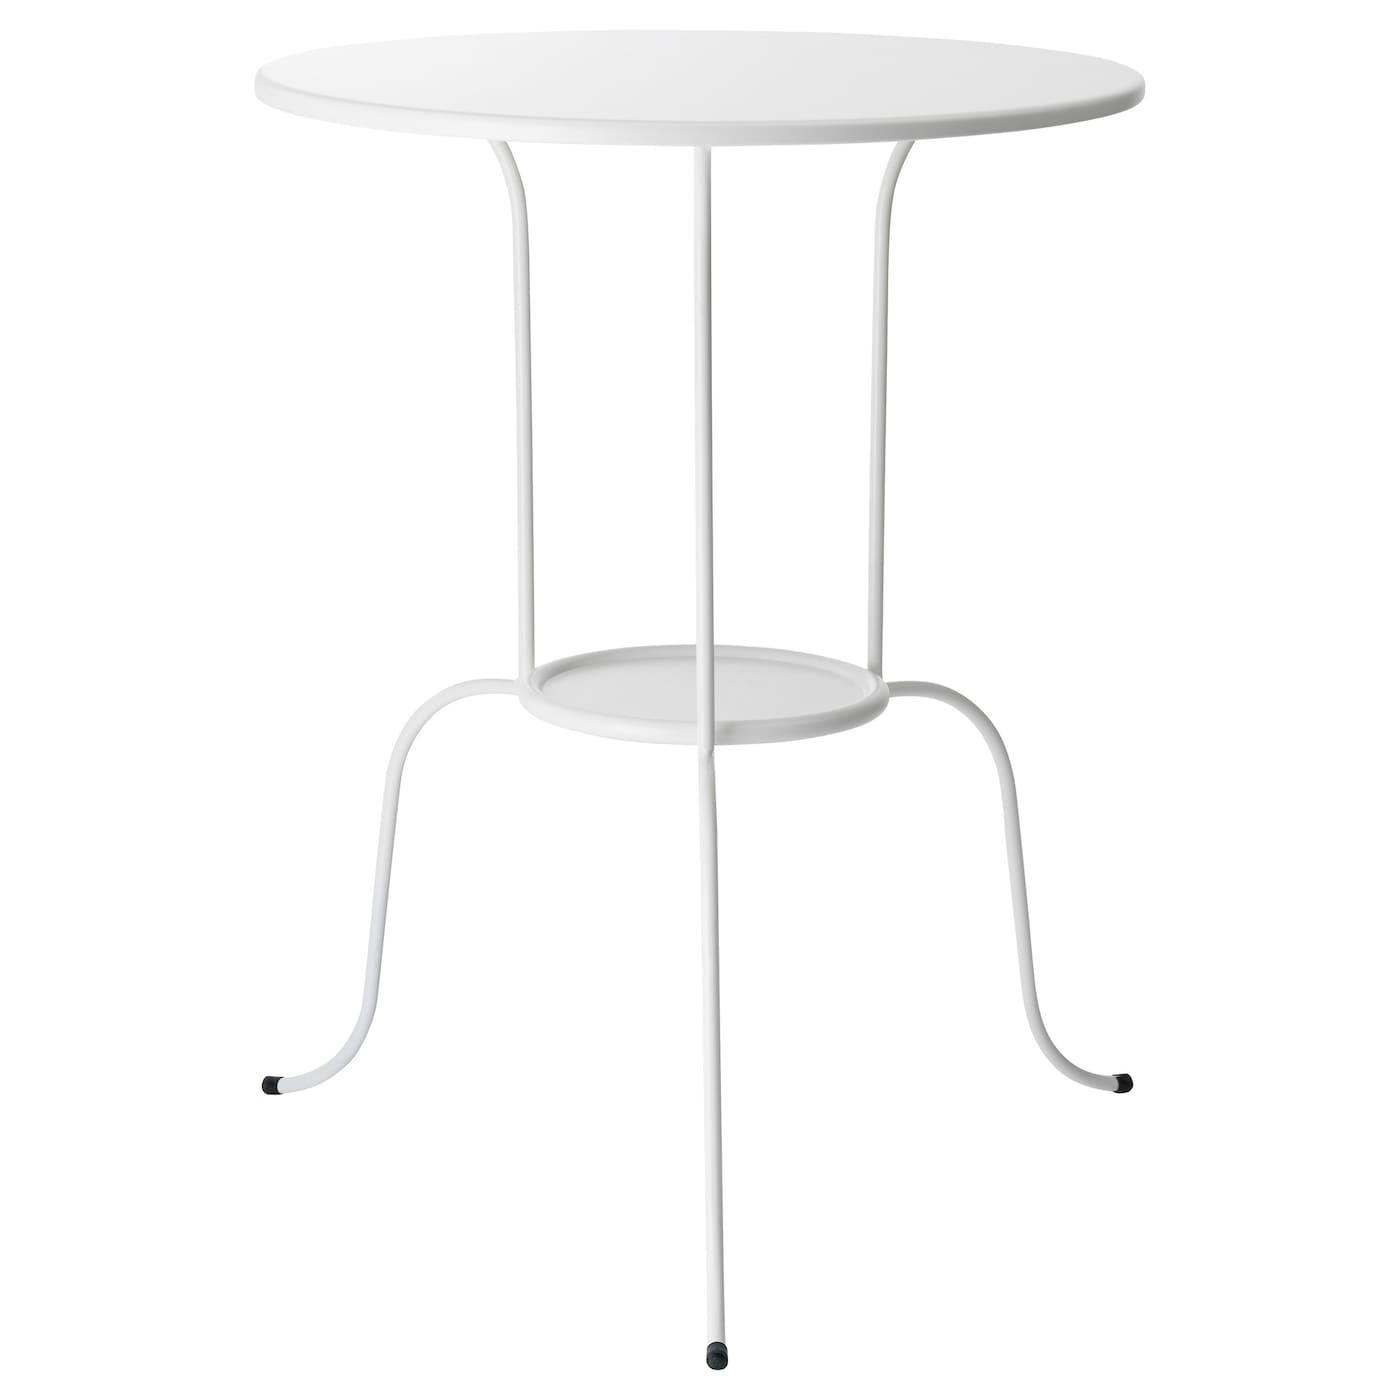 lindved side table white 50x68 cm ikea. Black Bedroom Furniture Sets. Home Design Ideas